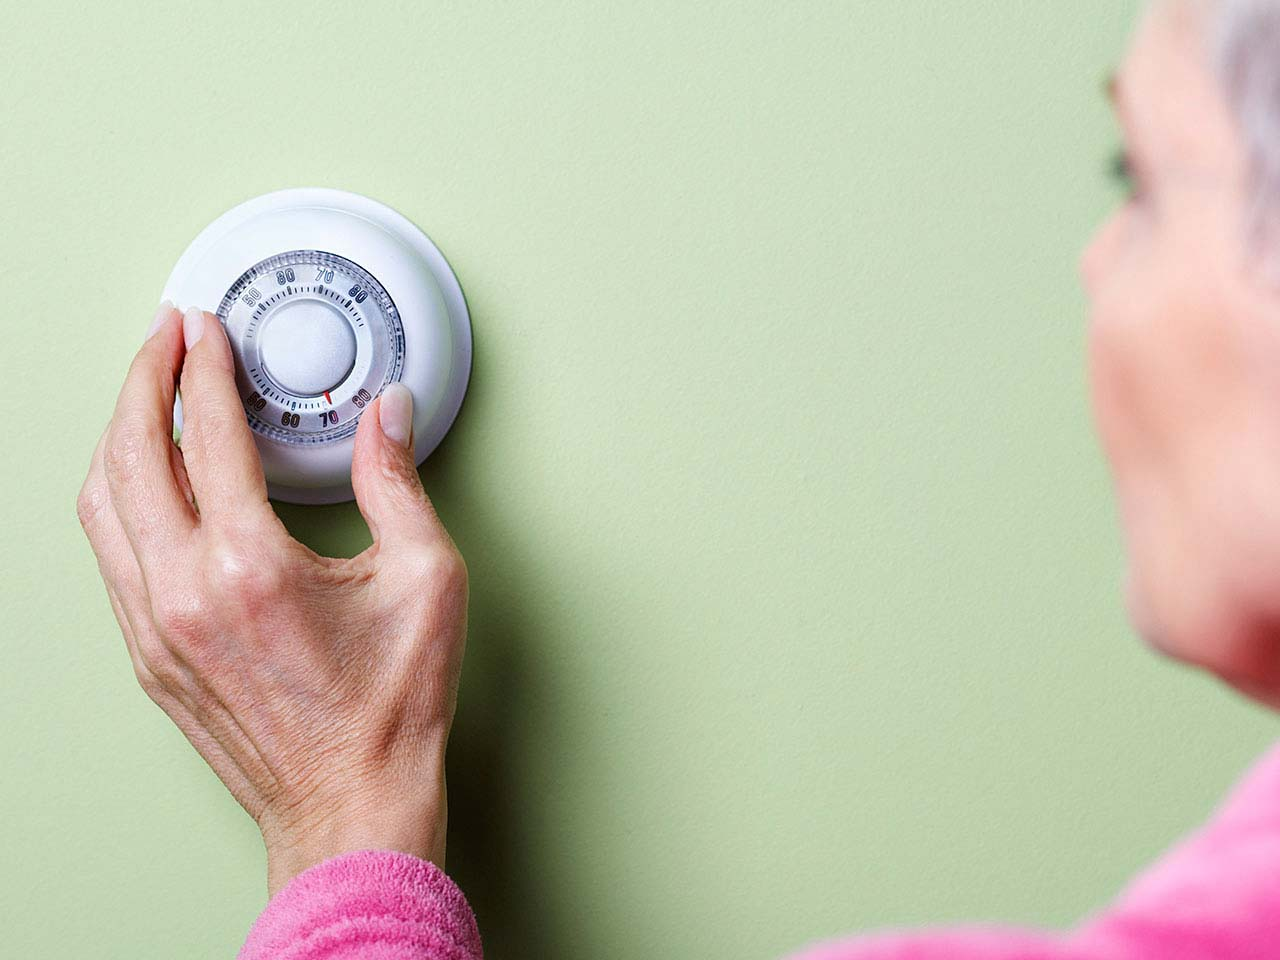 Mature lady turning down thermostat to save energy